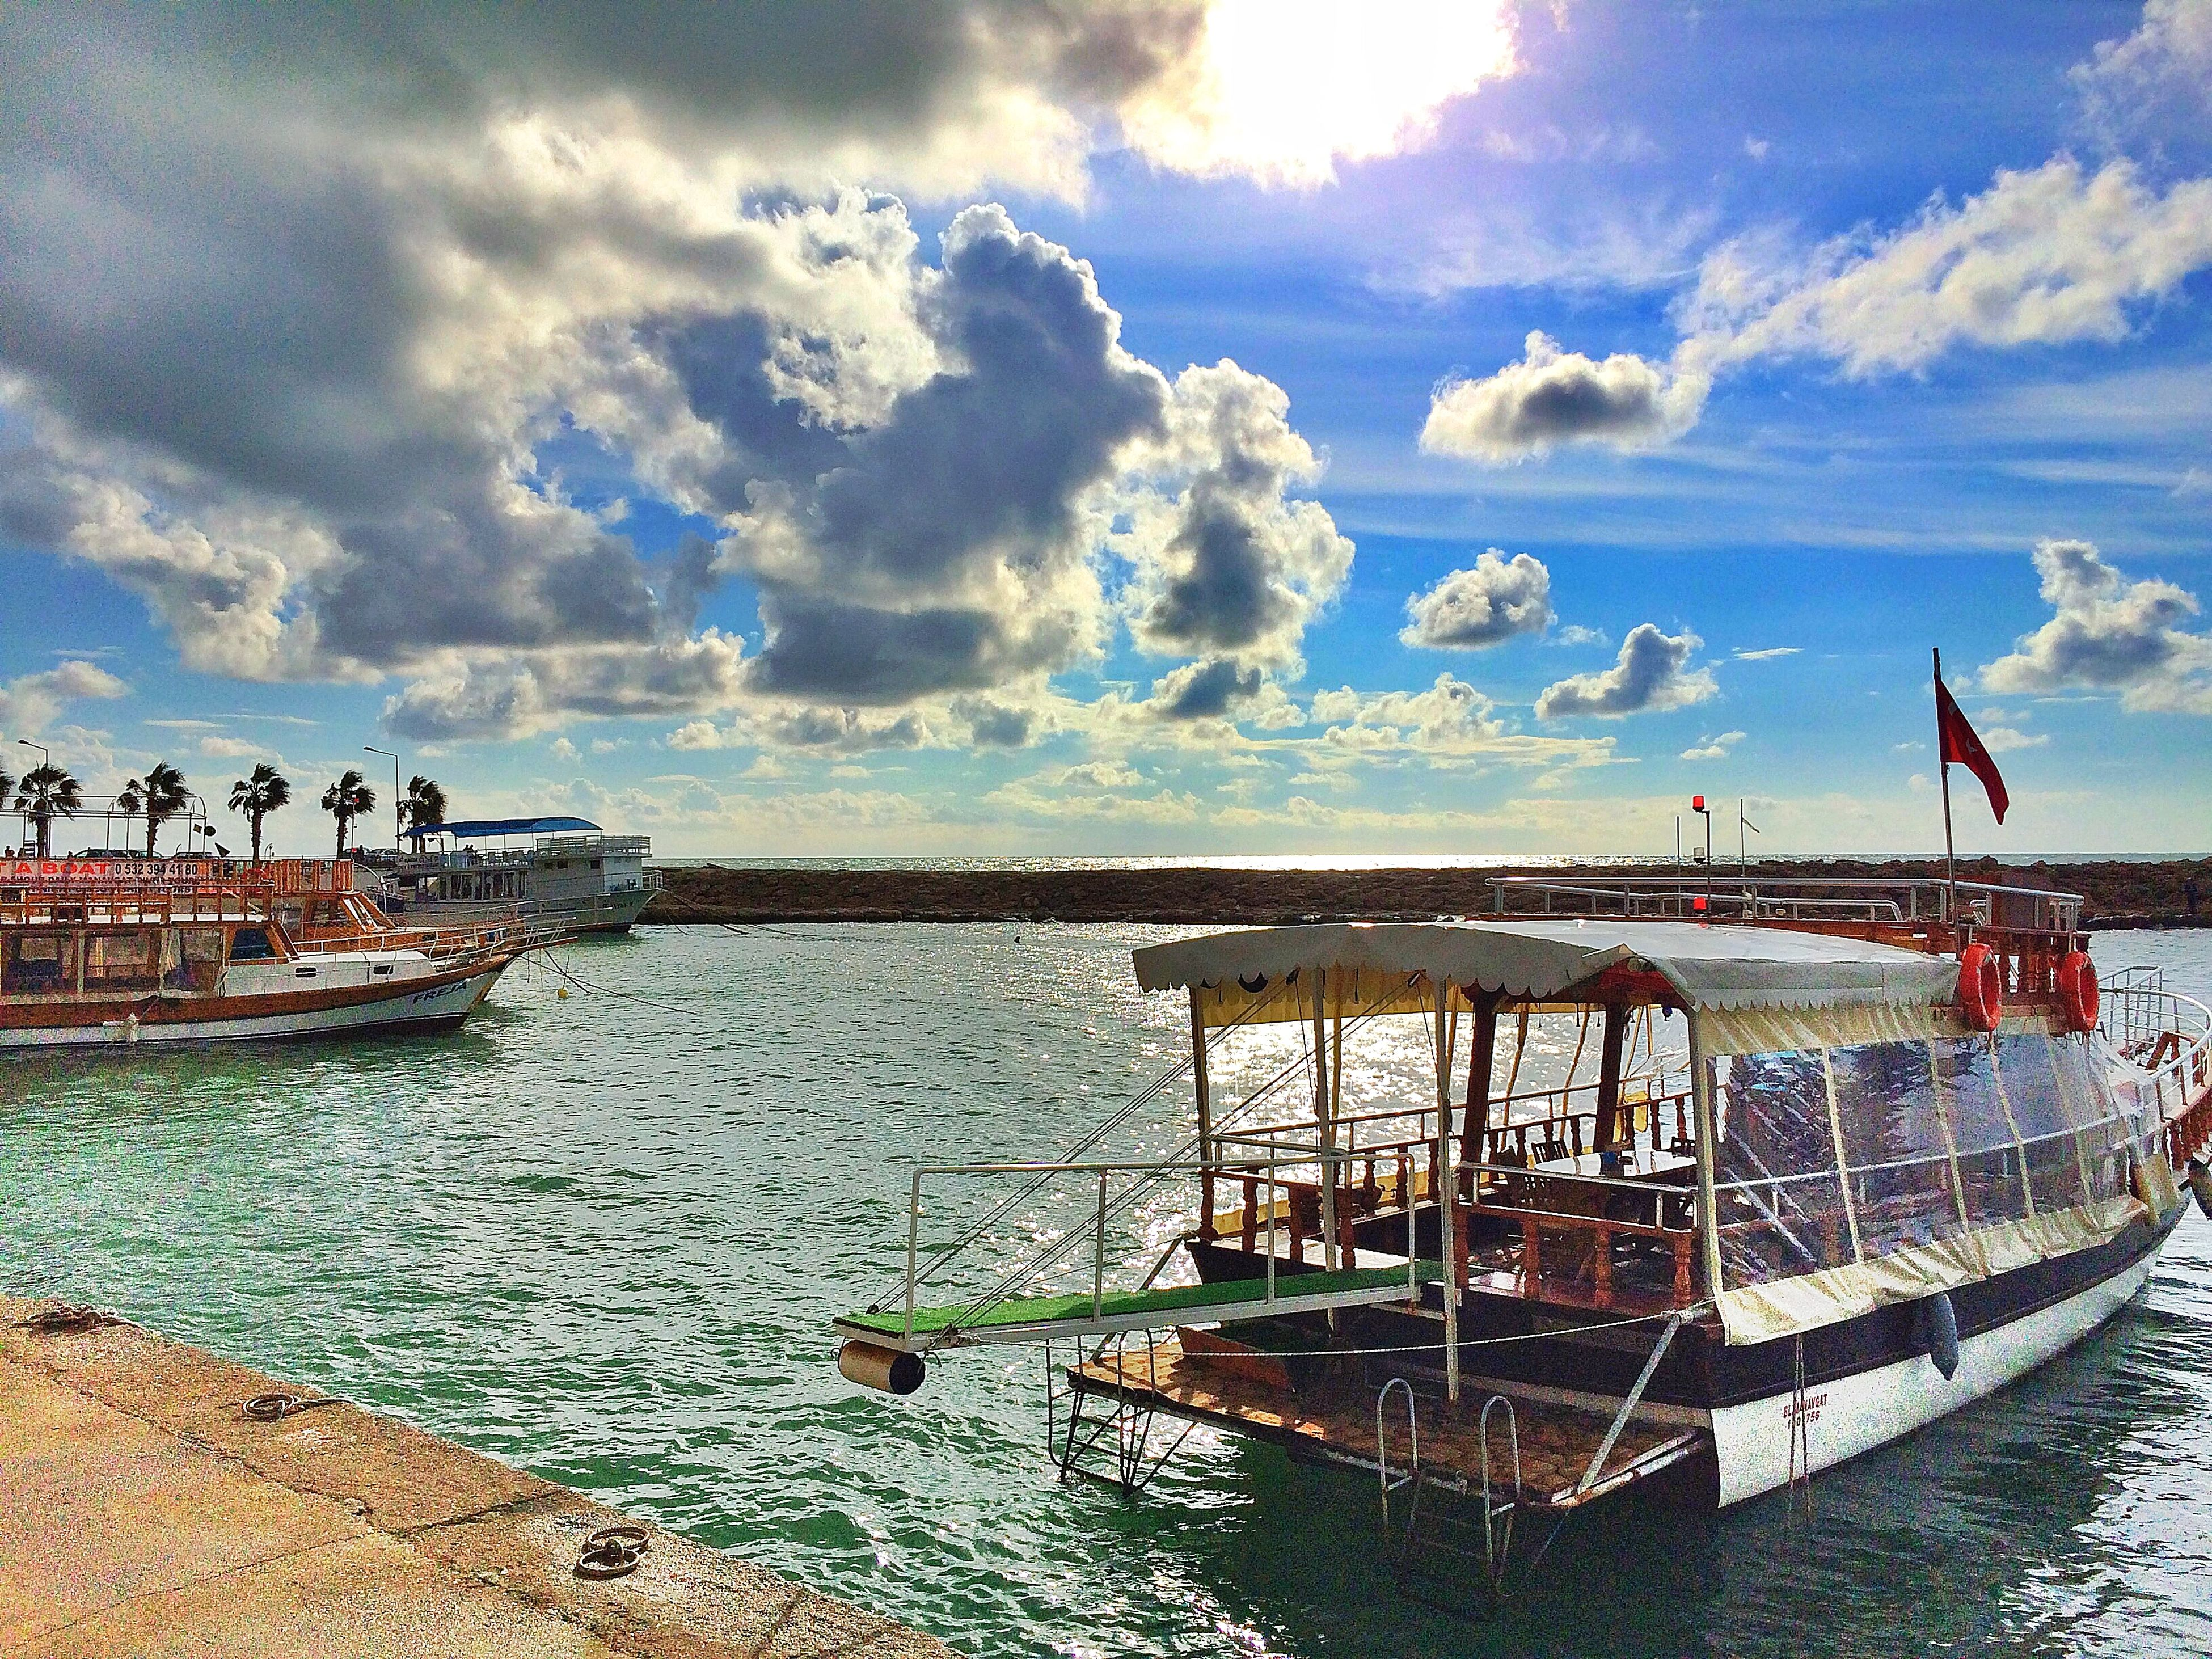 water, sky, sea, cloud - sky, pier, scenics, cloud, cloudy, horizon over water, tranquility, nature, tranquil scene, incidental people, beauty in nature, leisure activity, nautical vessel, railing, rippled, outdoors